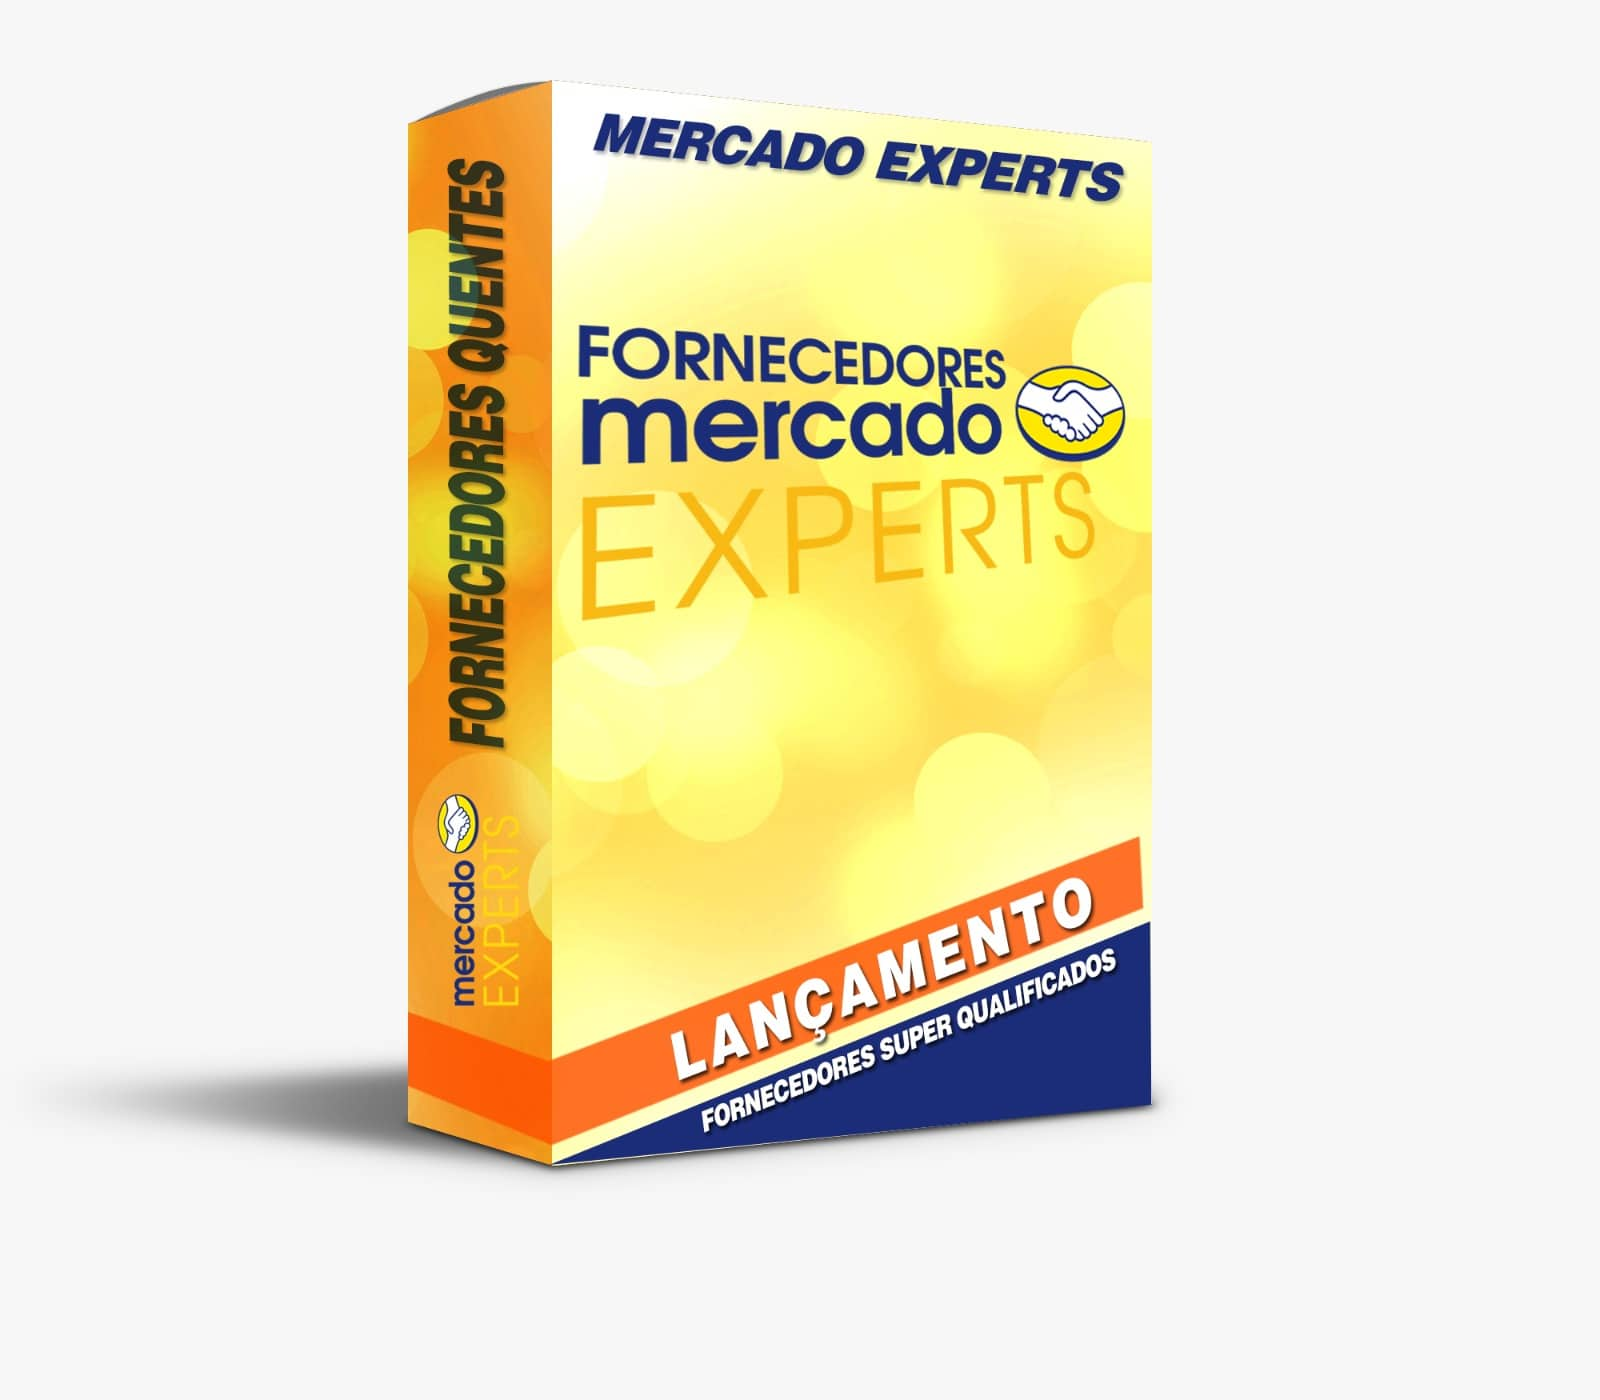 Ebook Mercado Expert